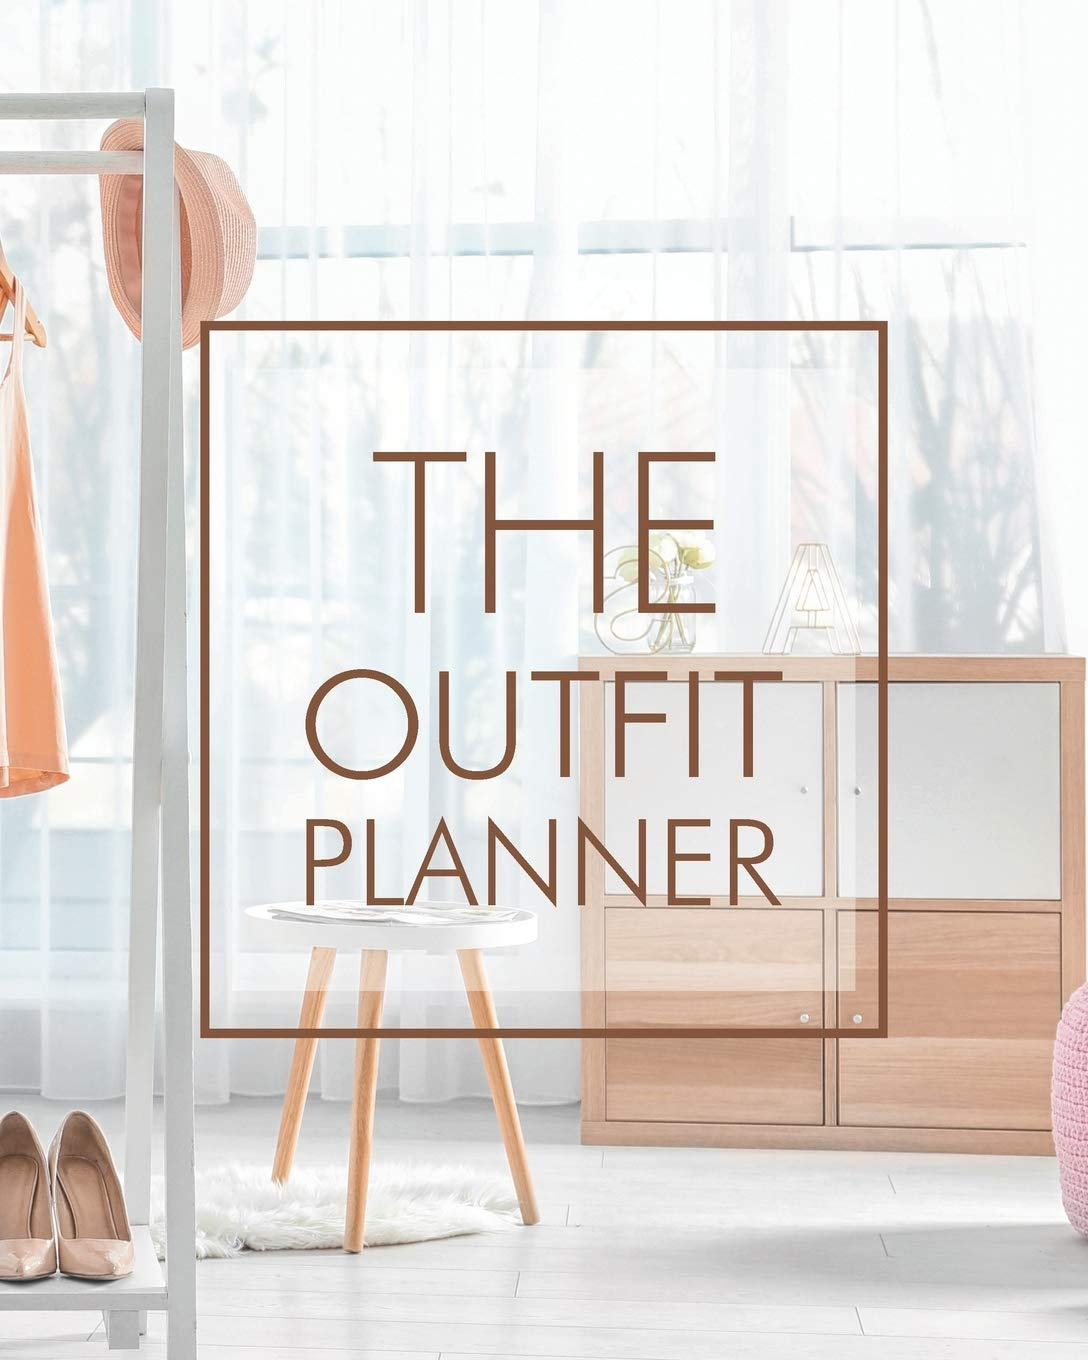 The outfit planner: Plan your outfit with this planner and have tons of fun choosing the style of the clothes in your wardrobe. This notebook will ... no time. Also perfect for a capsule wardrobe.